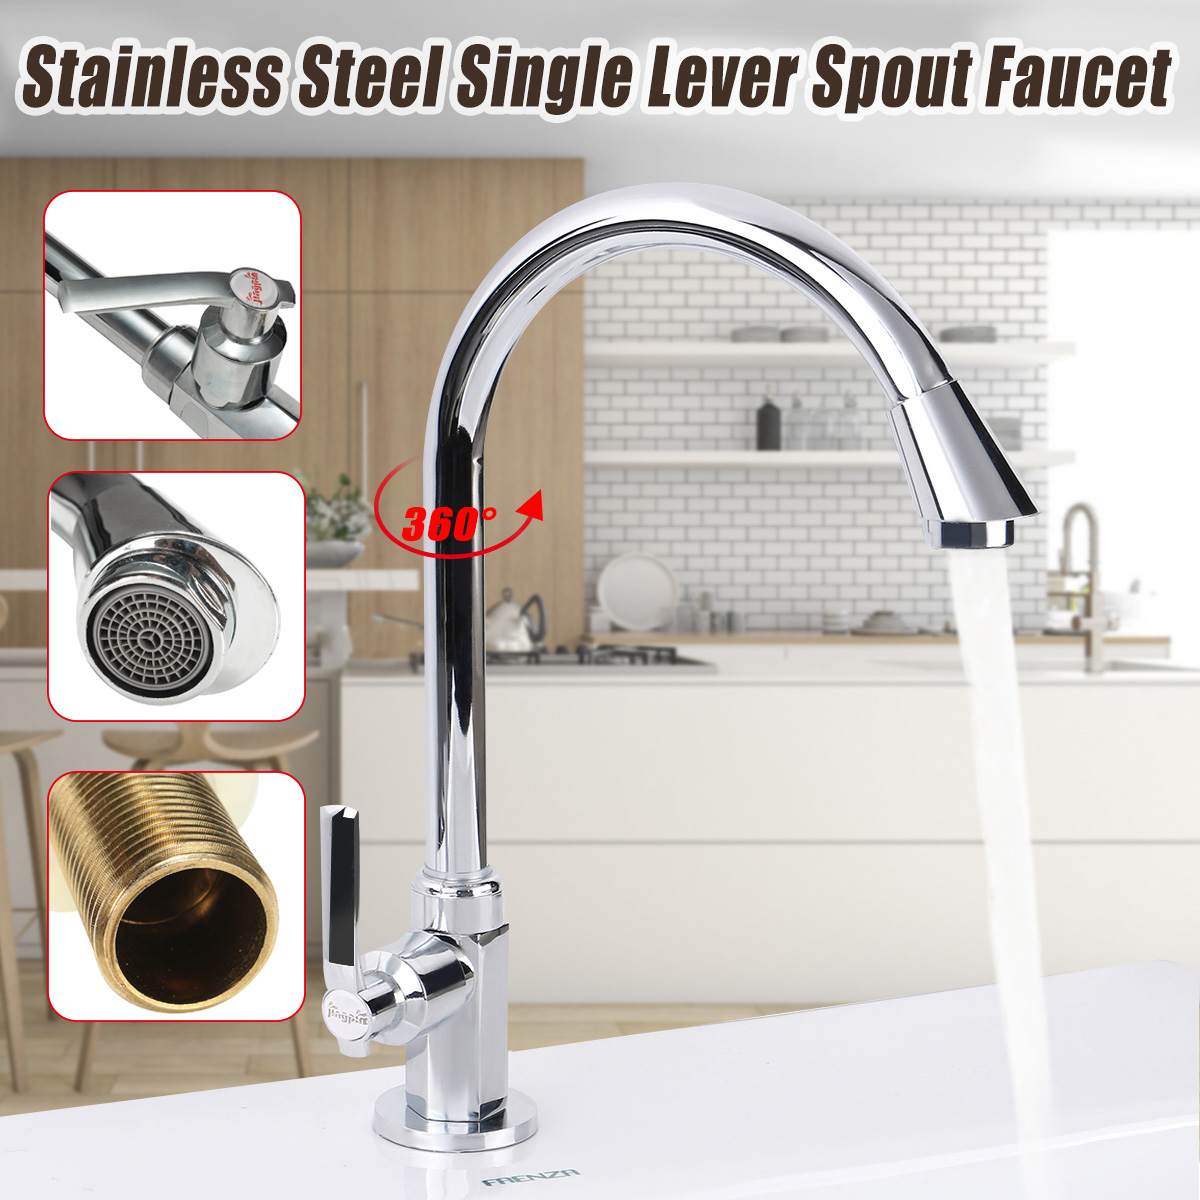 Stainless Steel Kitchen Sink Faucet Brass Cold Water Tap Bathroom Faucet 360 Degree Rotation Single Handle Basin FaucetStainless Steel Kitchen Sink Faucet Brass Cold Water Tap Bathroom Faucet 360 Degree Rotation Single Handle Basin Faucet